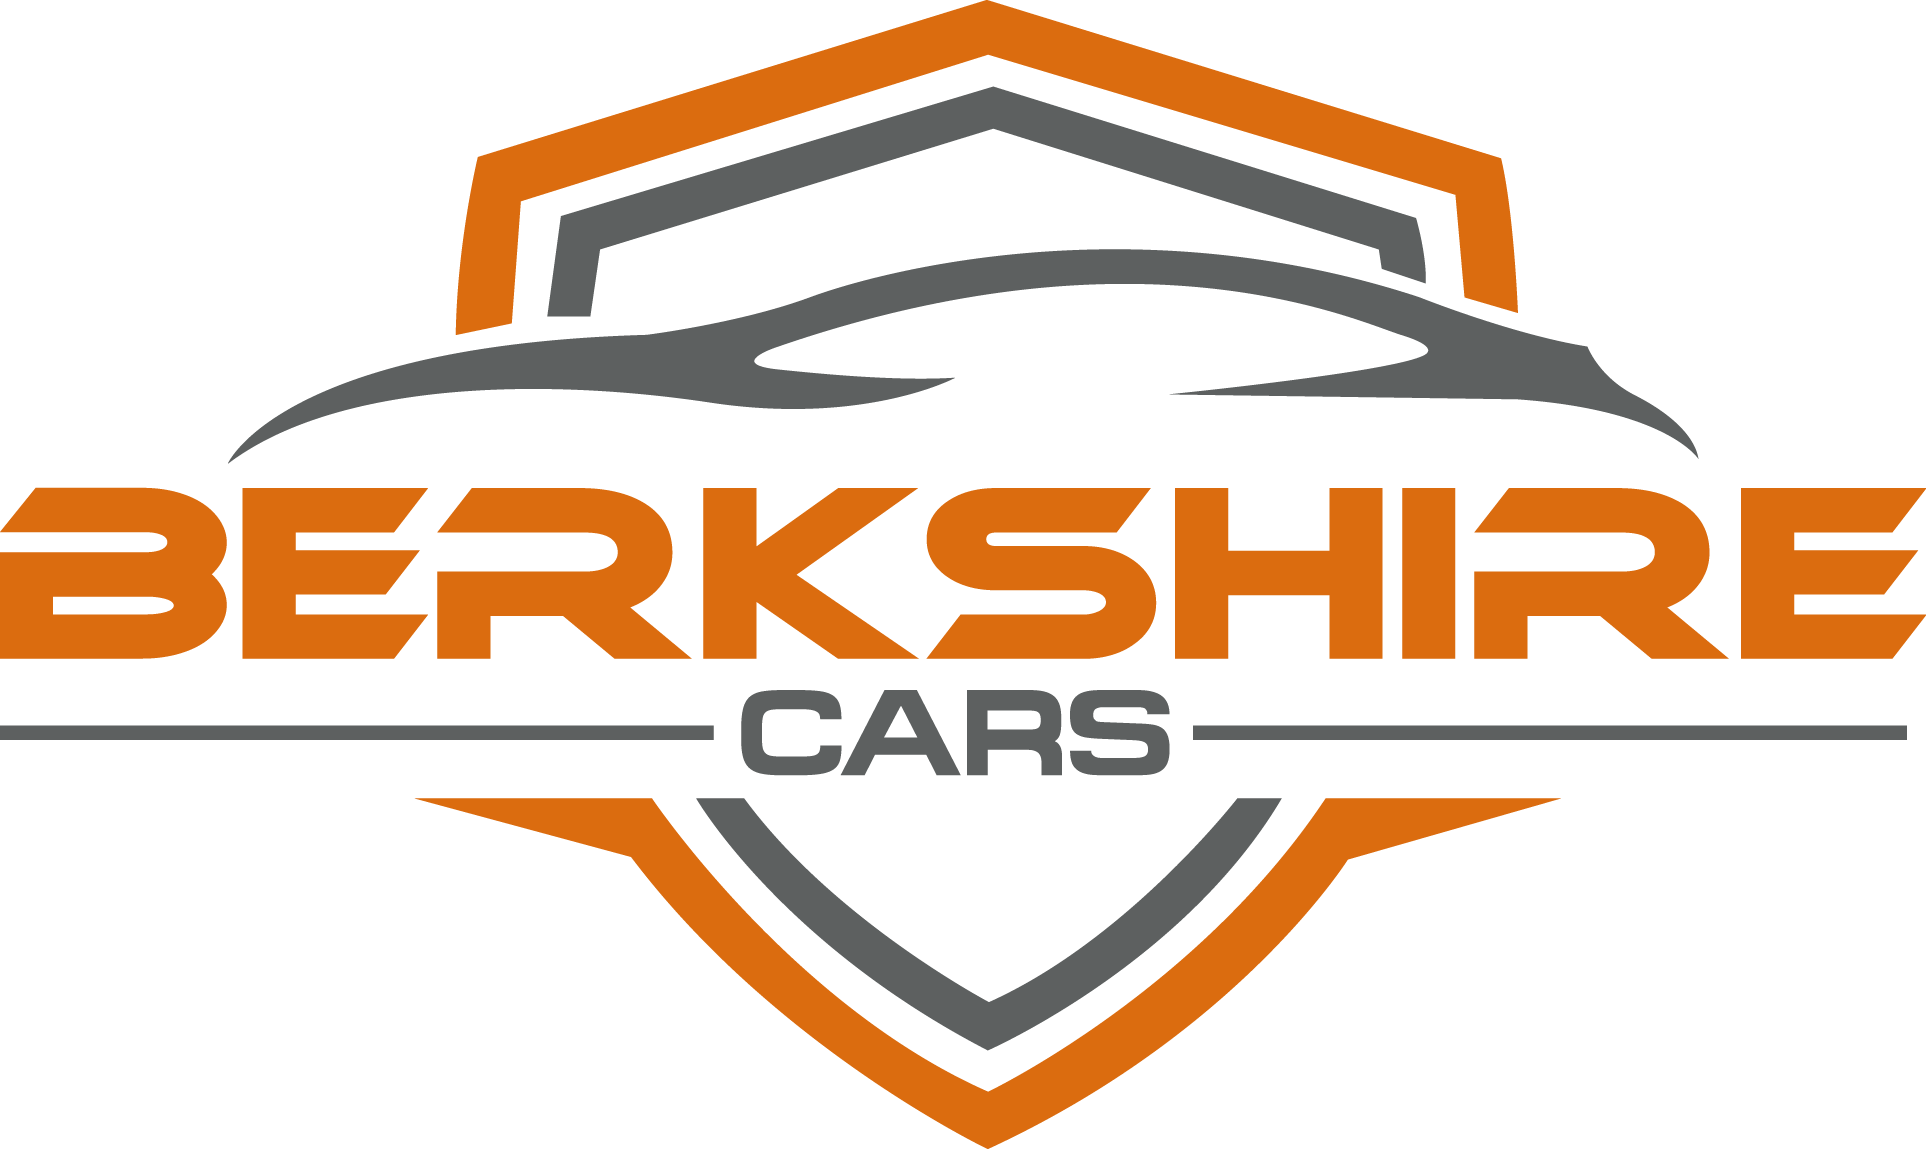 Berkshire Cars